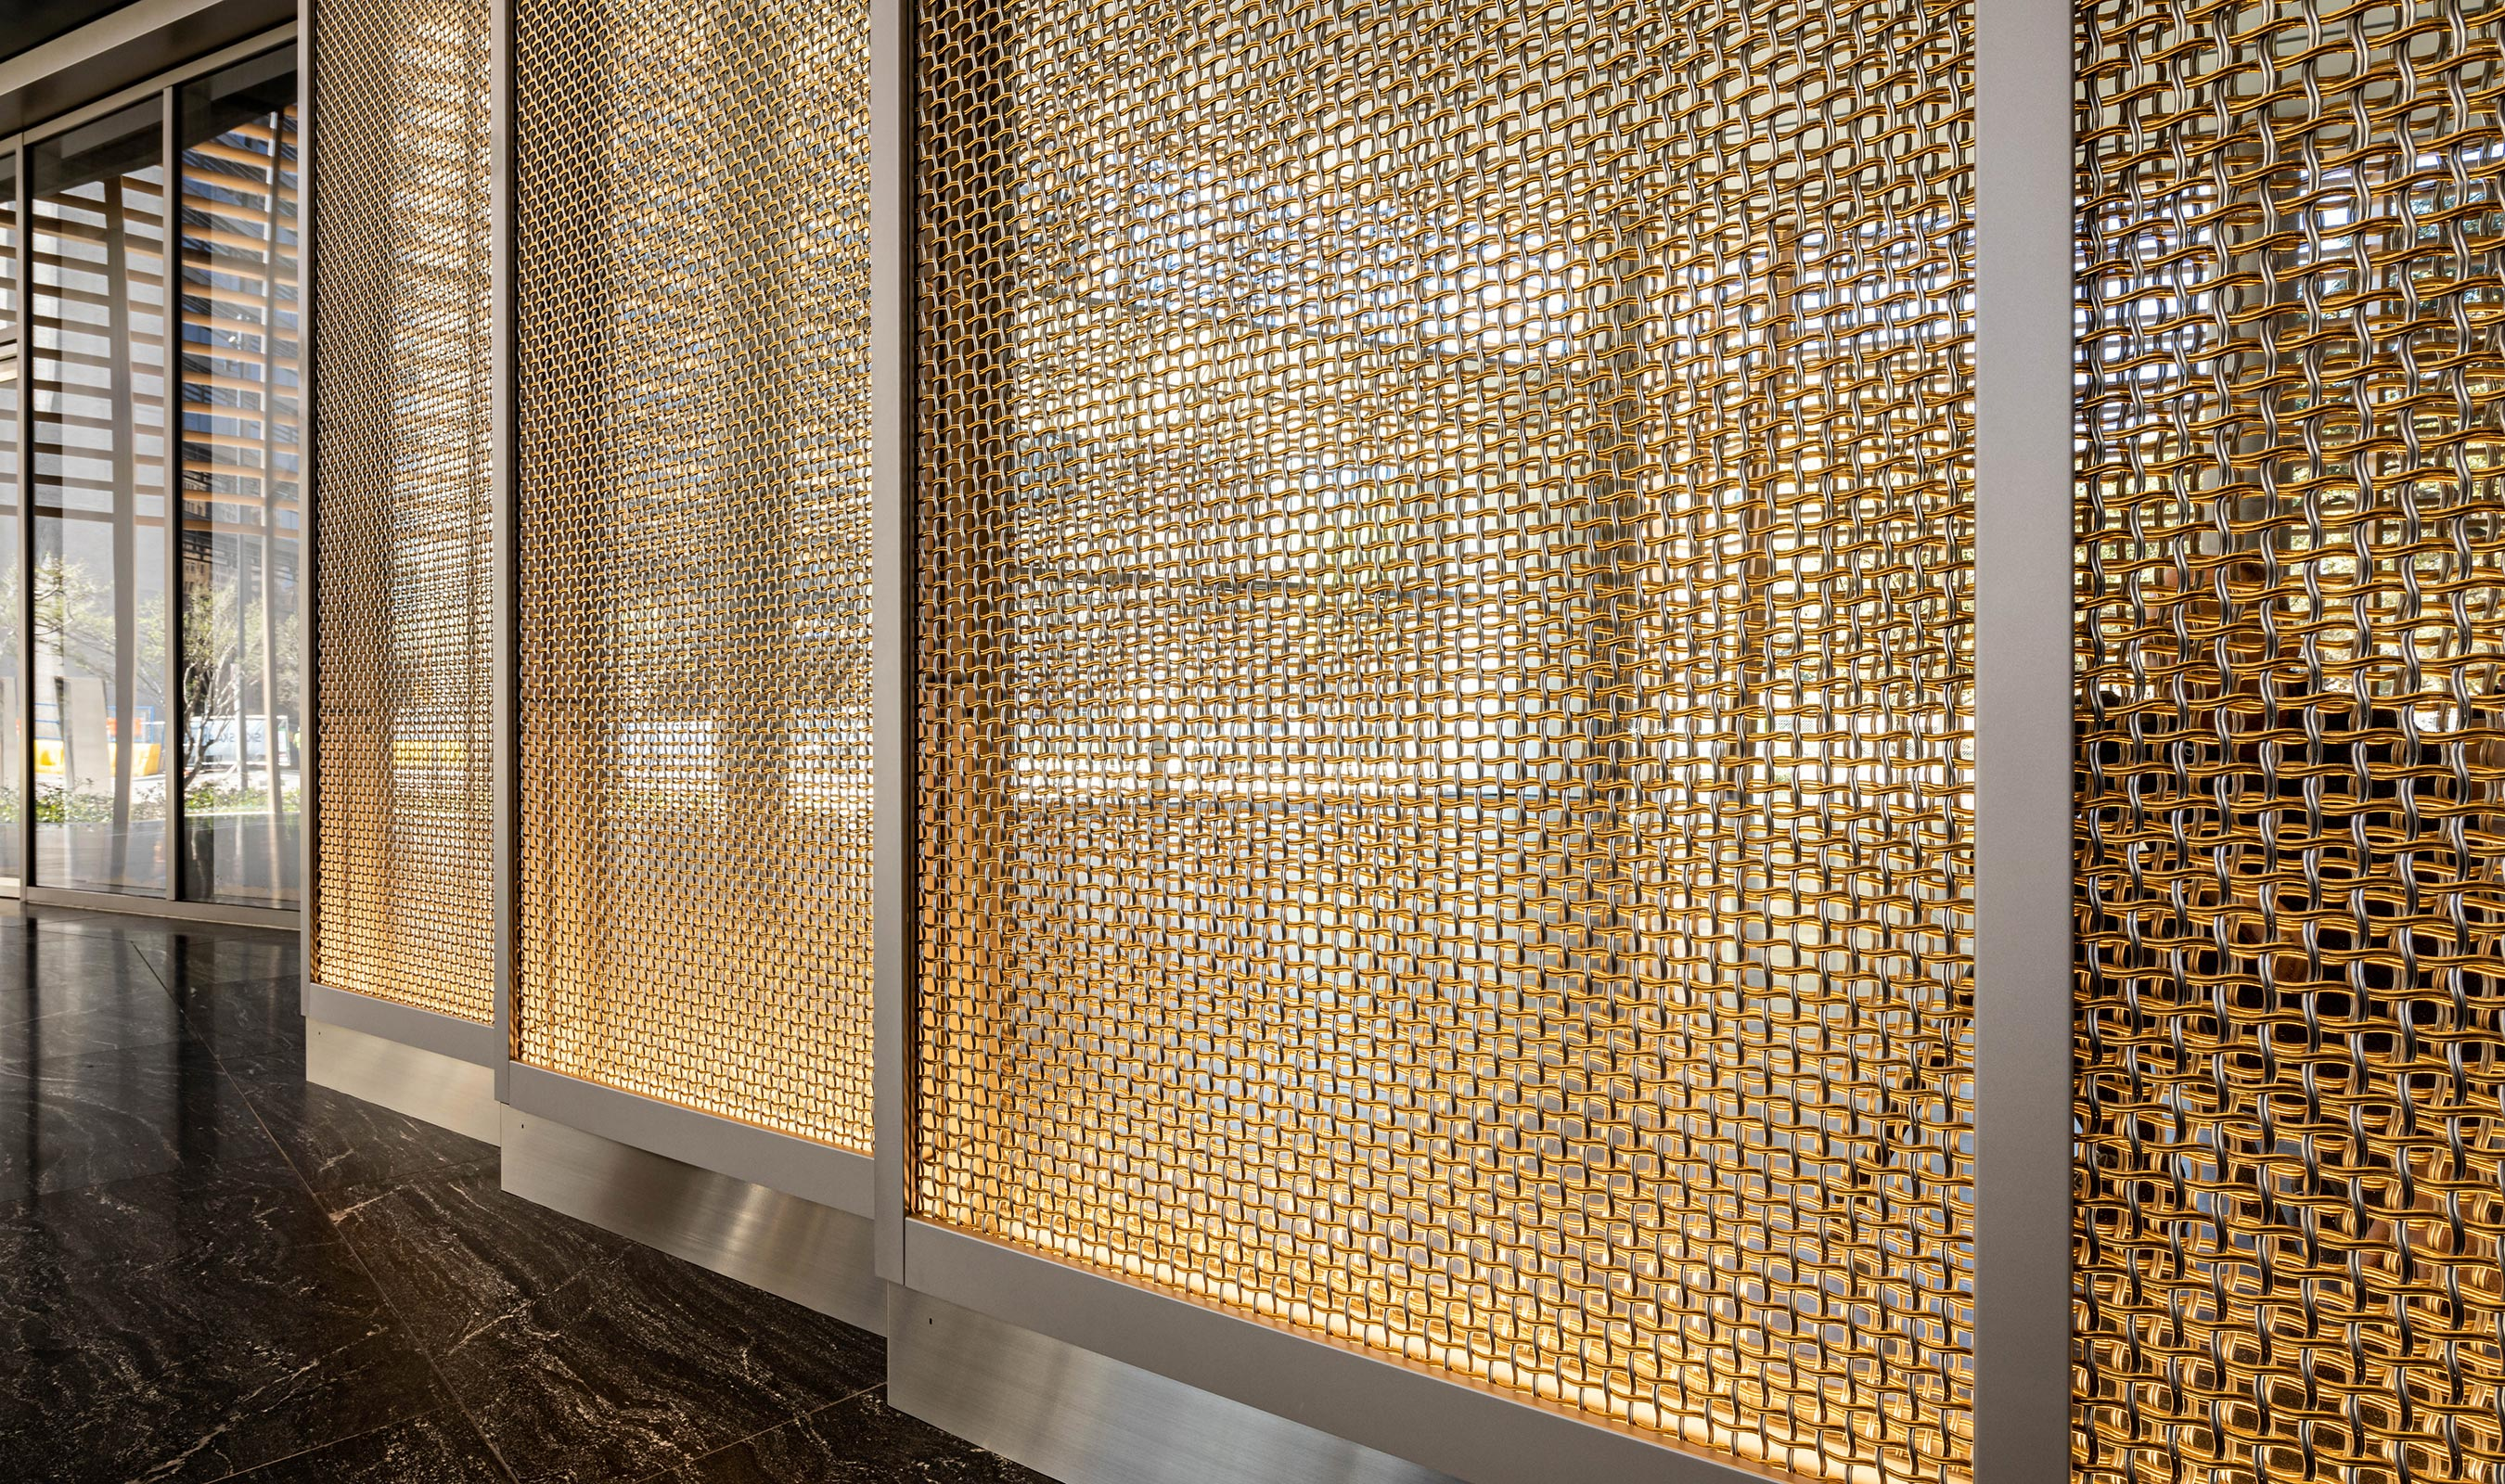 The large open percentage of Banker Wire's M22-80 wire mesh pattern creates a double image reflection in the mirror panels, allowing passersby to appreciate both sides of the nested helical crimped wires.